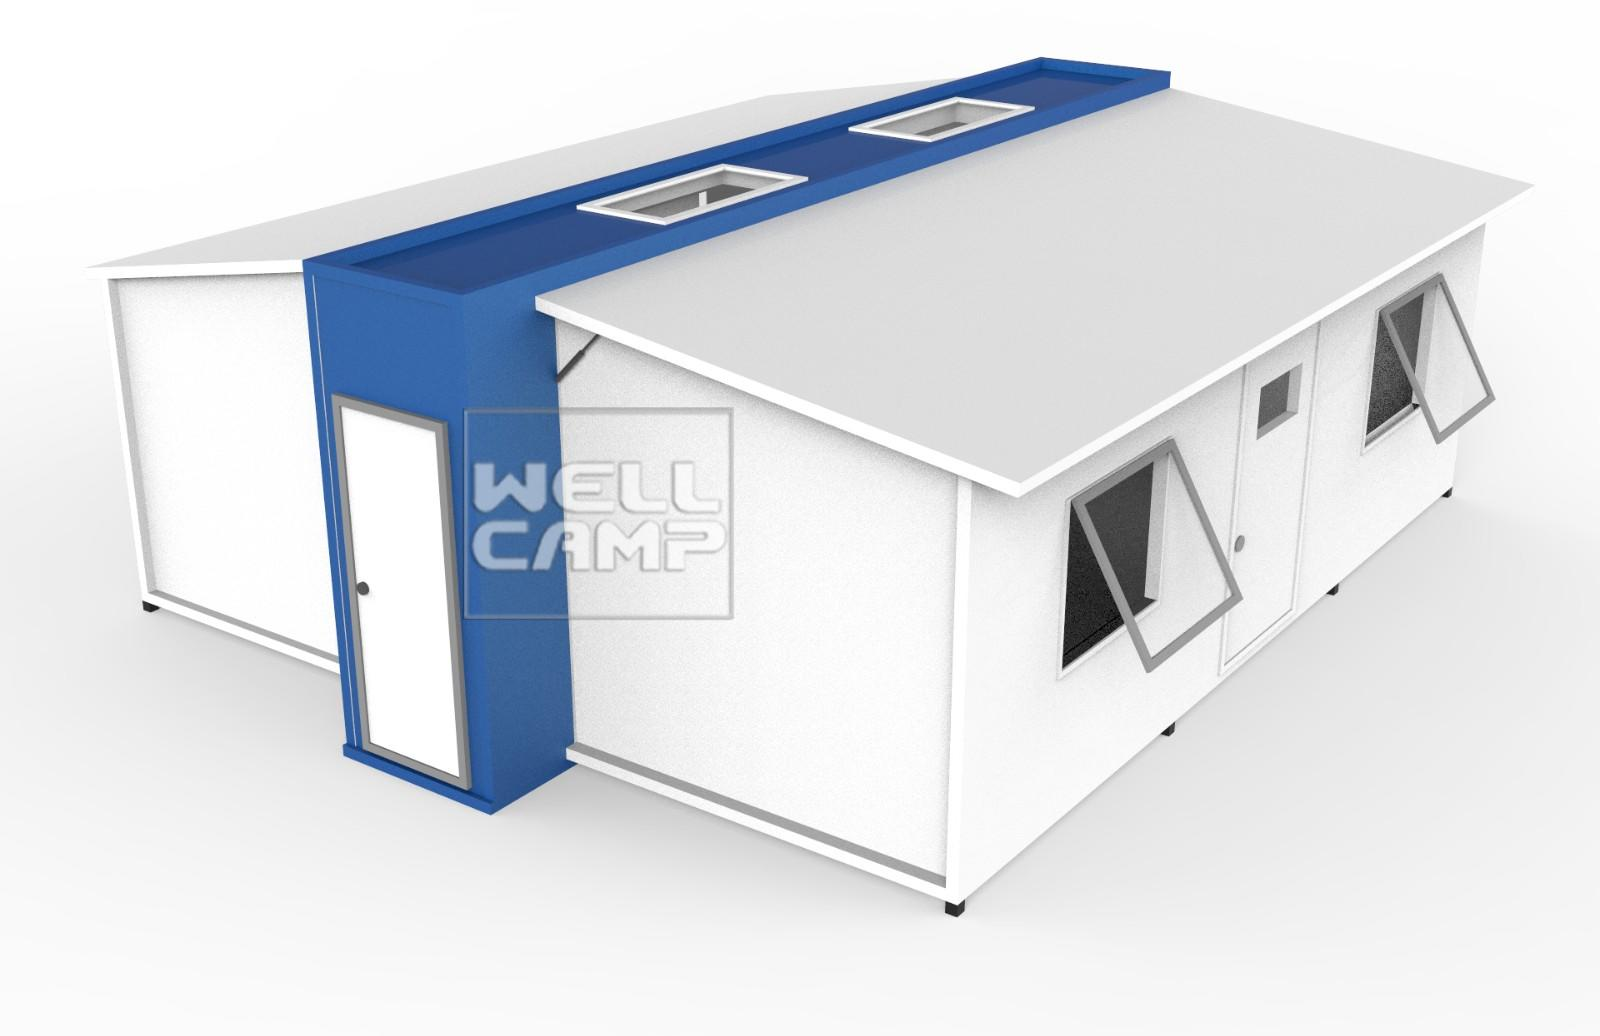 house student expandable container house family WELLCAMP